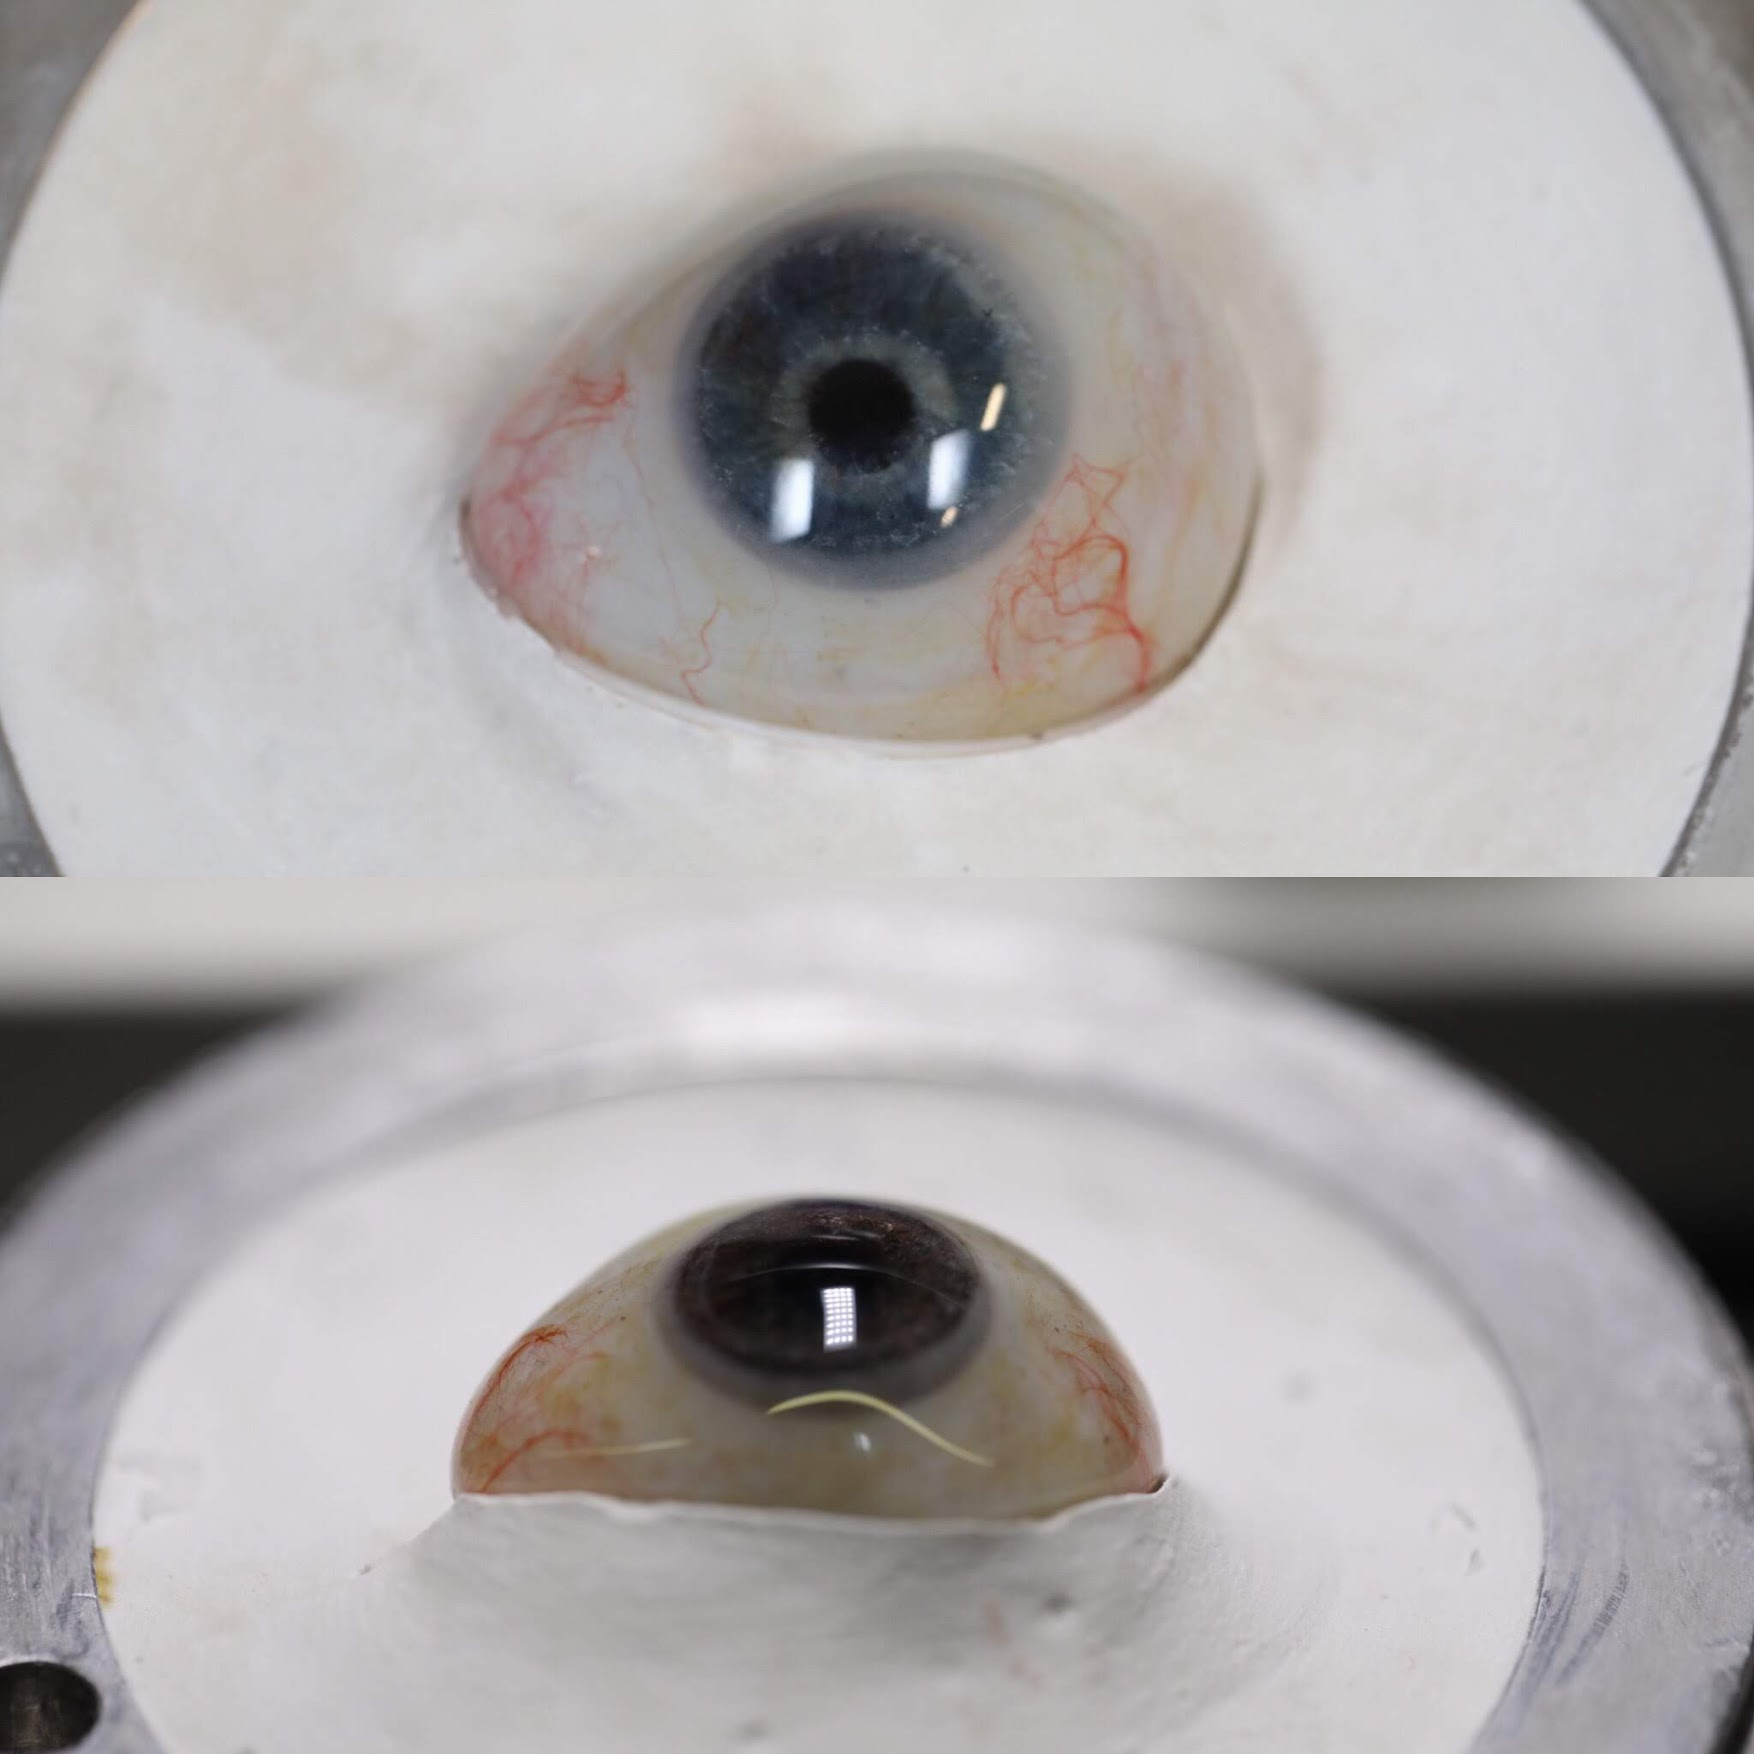 How often does a prosthetic eye need to be replaced?